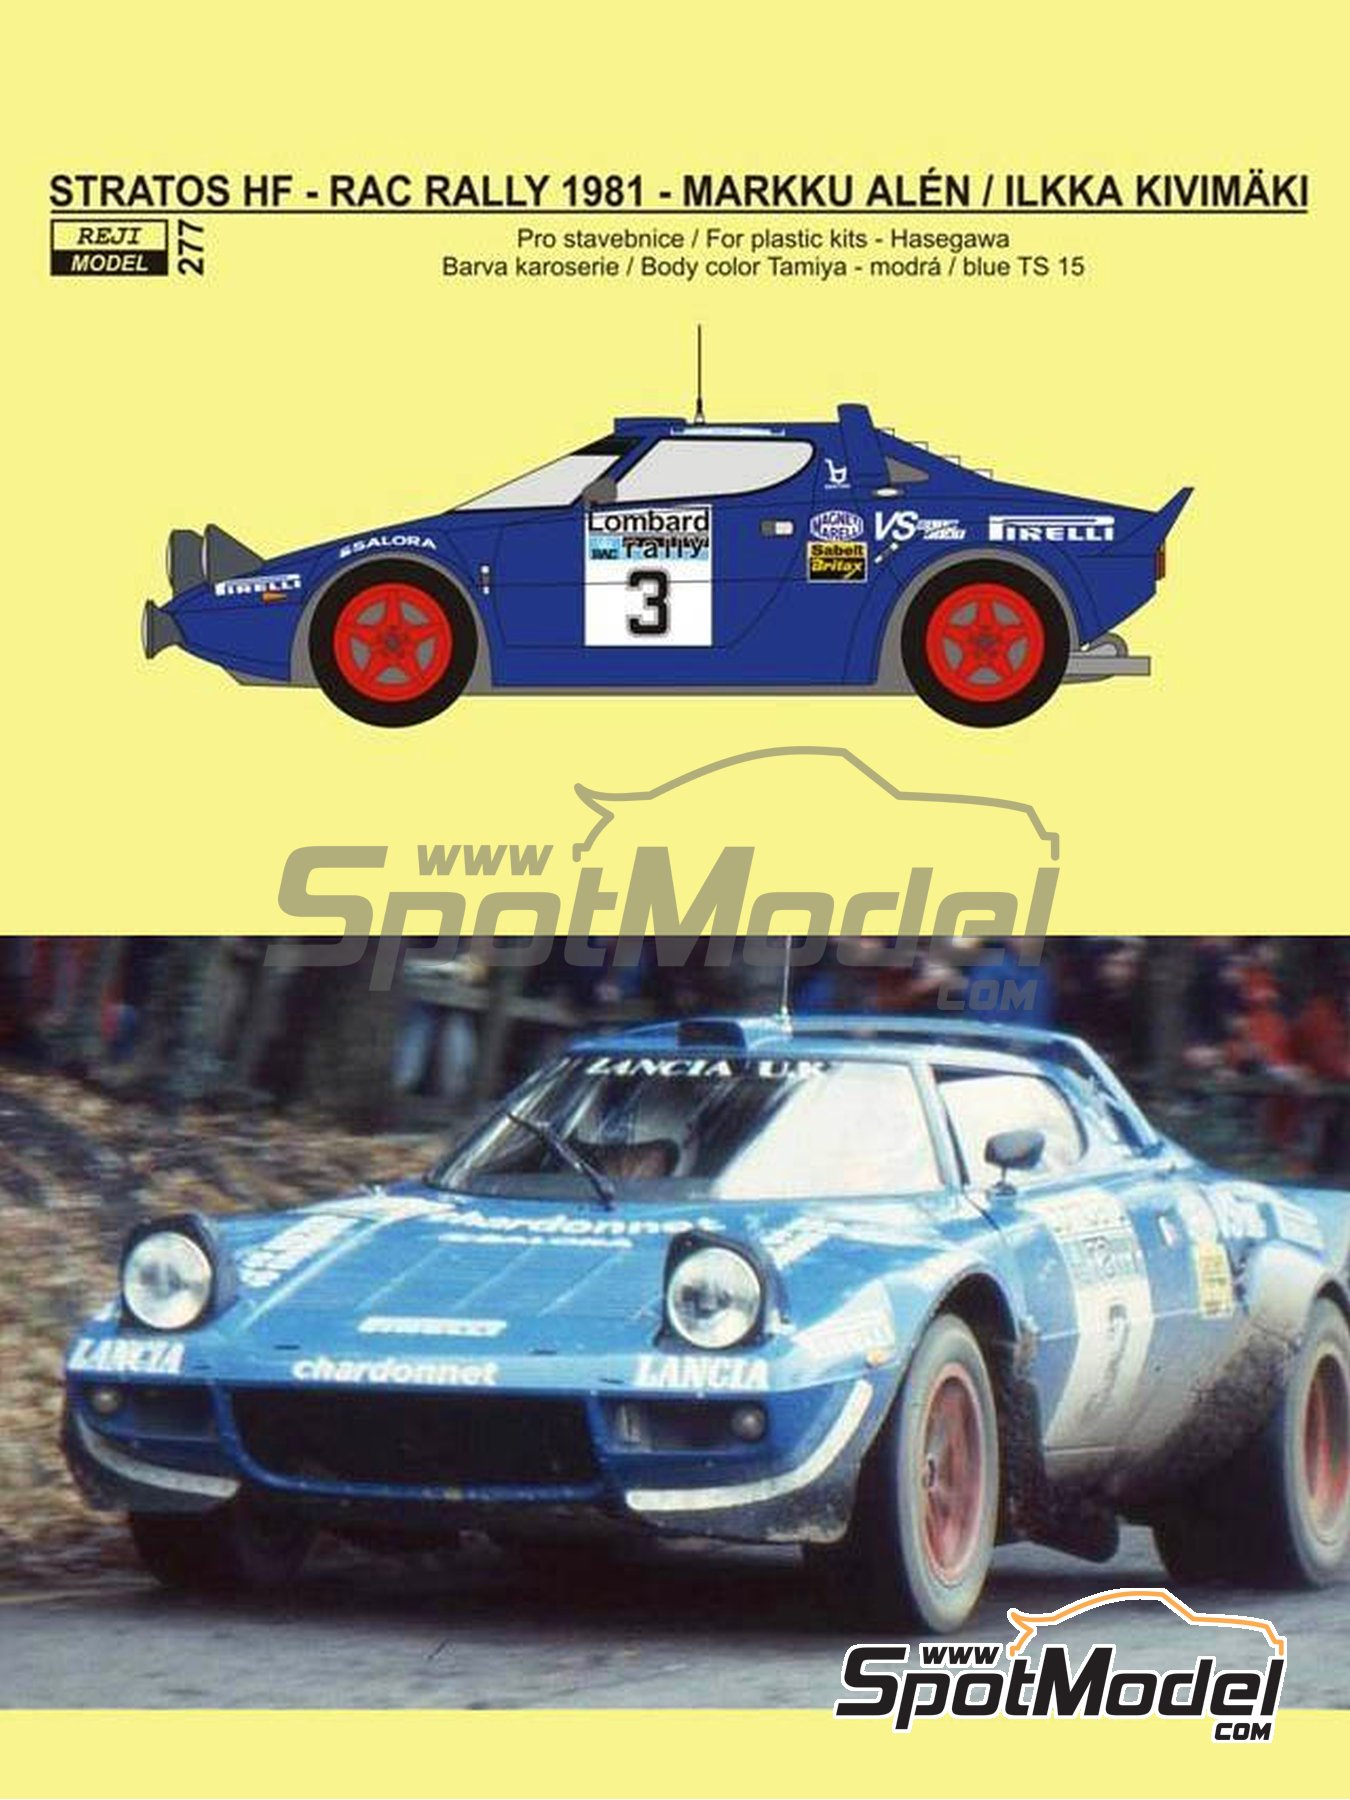 Lancia Stratos HF Pirelli - Great Britain RAC Rally 1981 | Marking / livery in 1/24 scale manufactured by Reji Model (ref. REJI-277) image